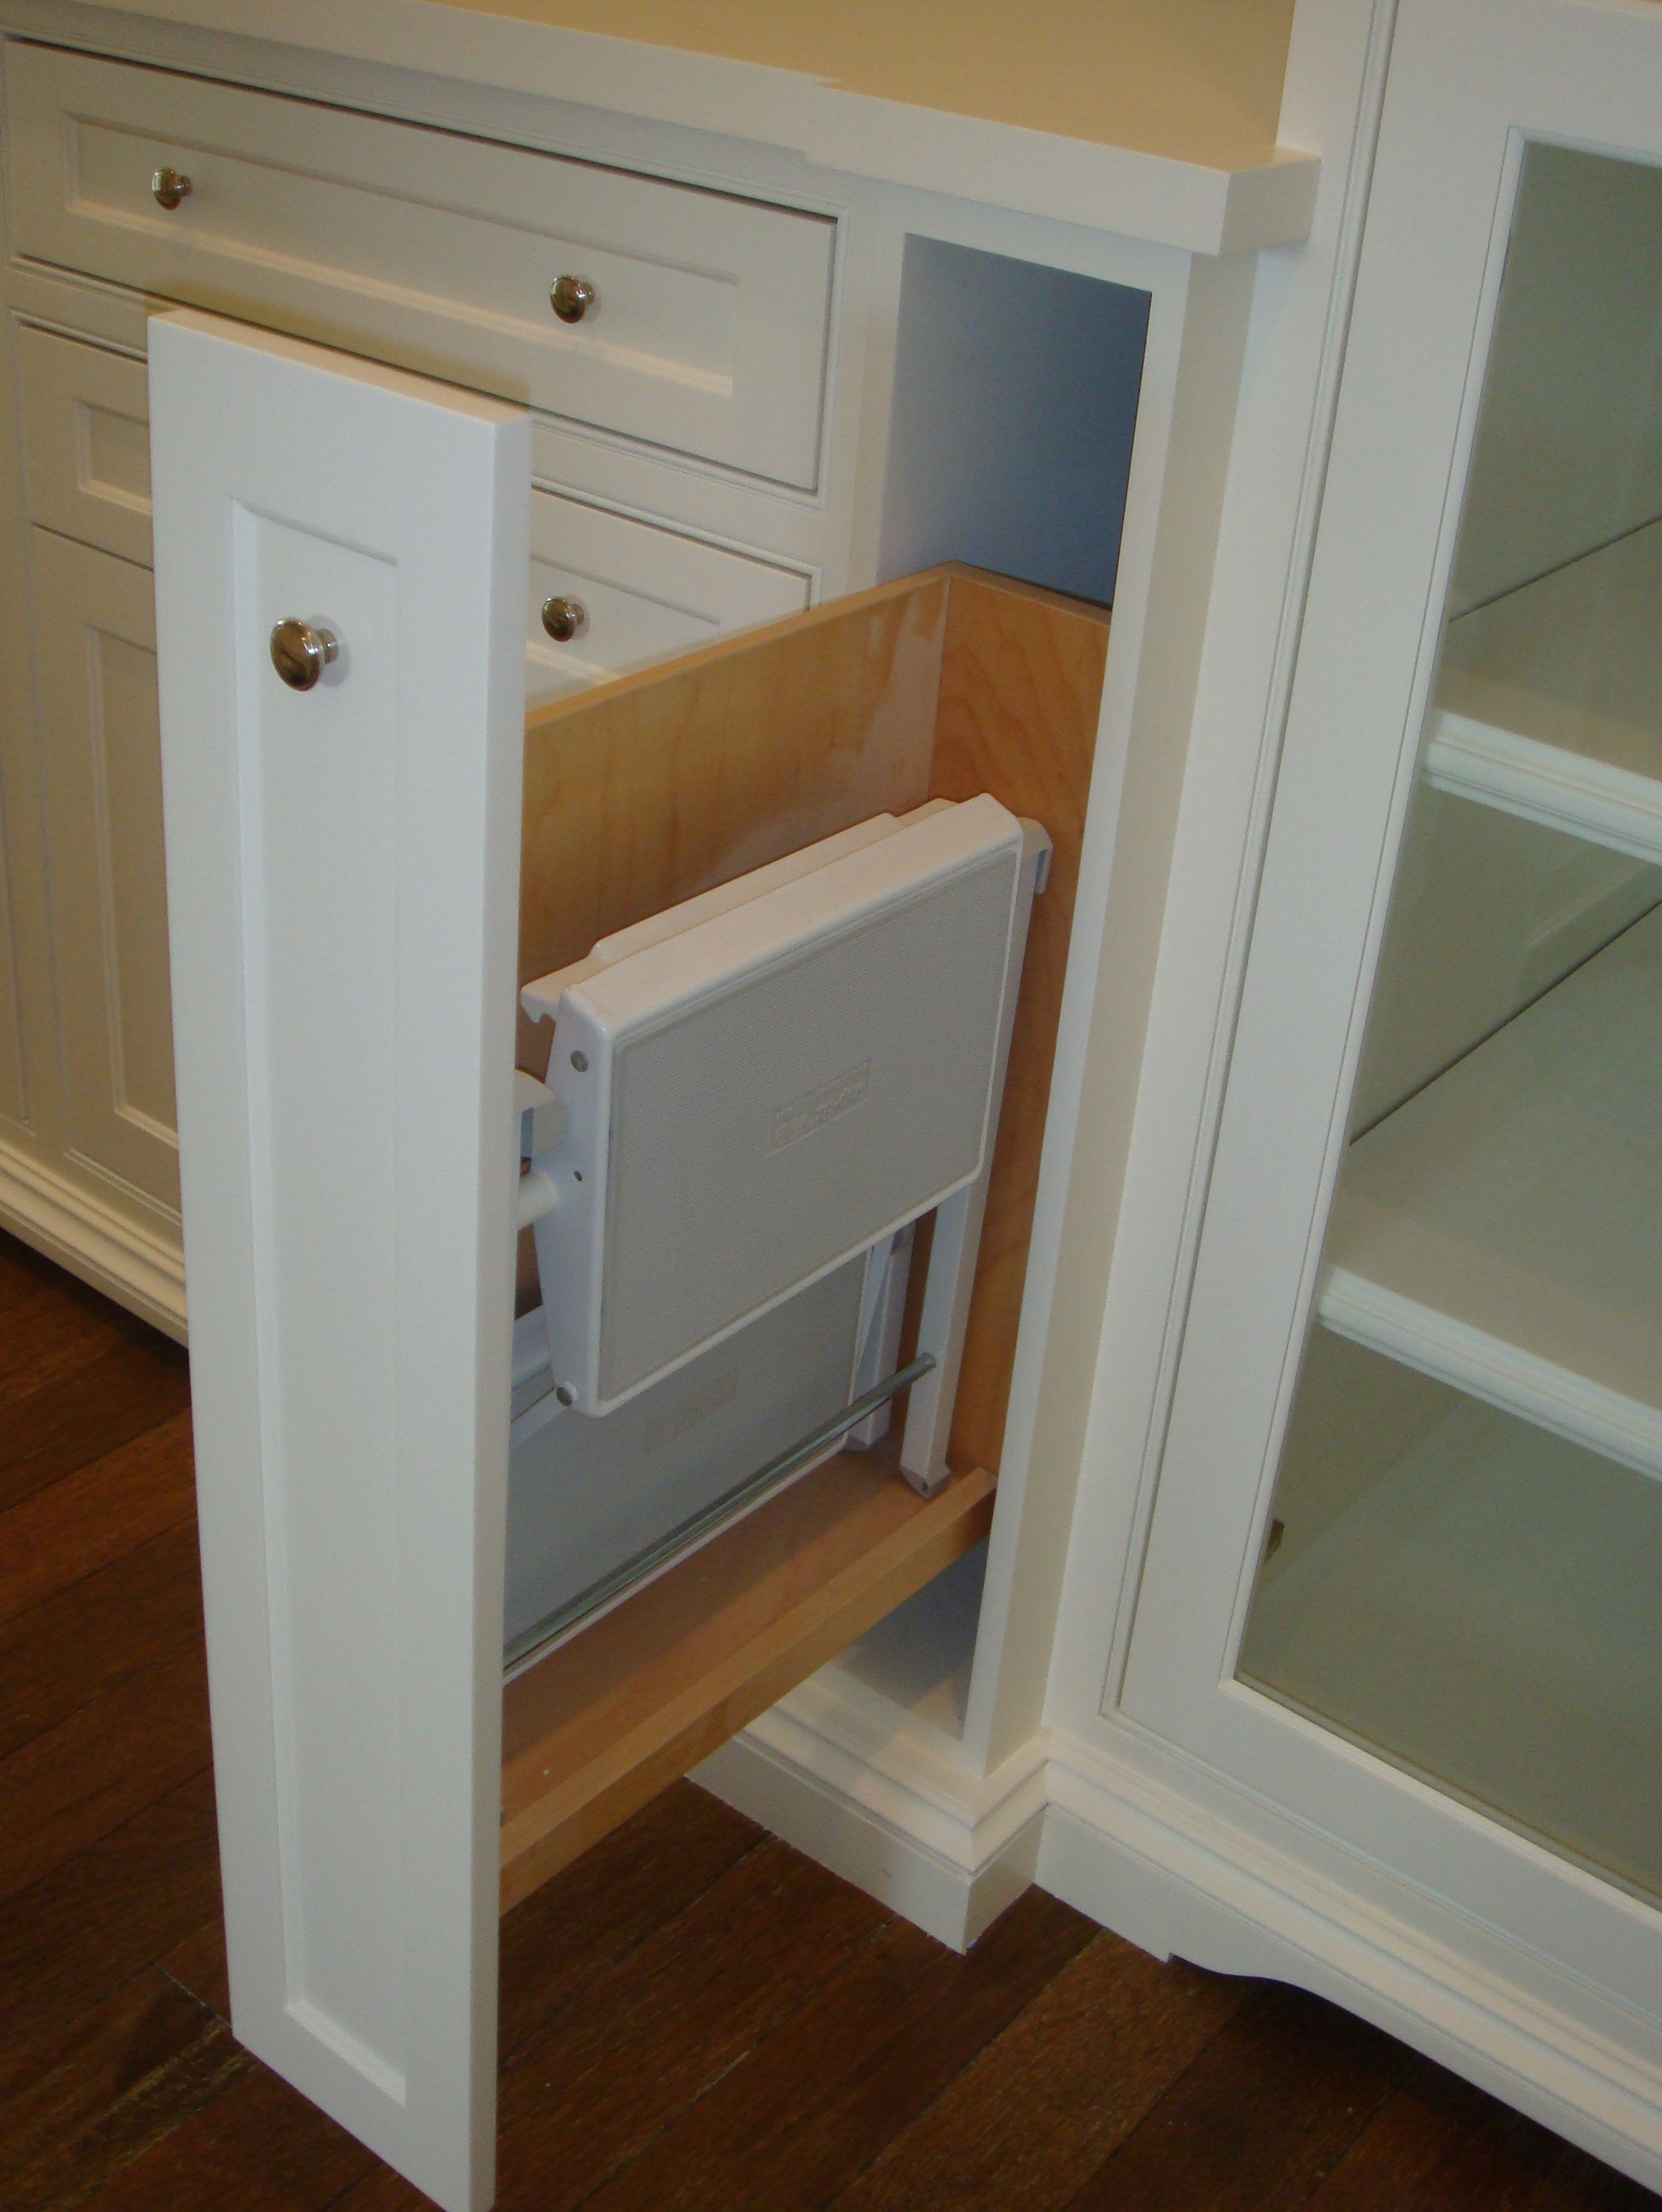 Nice Detail, Make A Pull Out With A Step Stool In It For The Hard